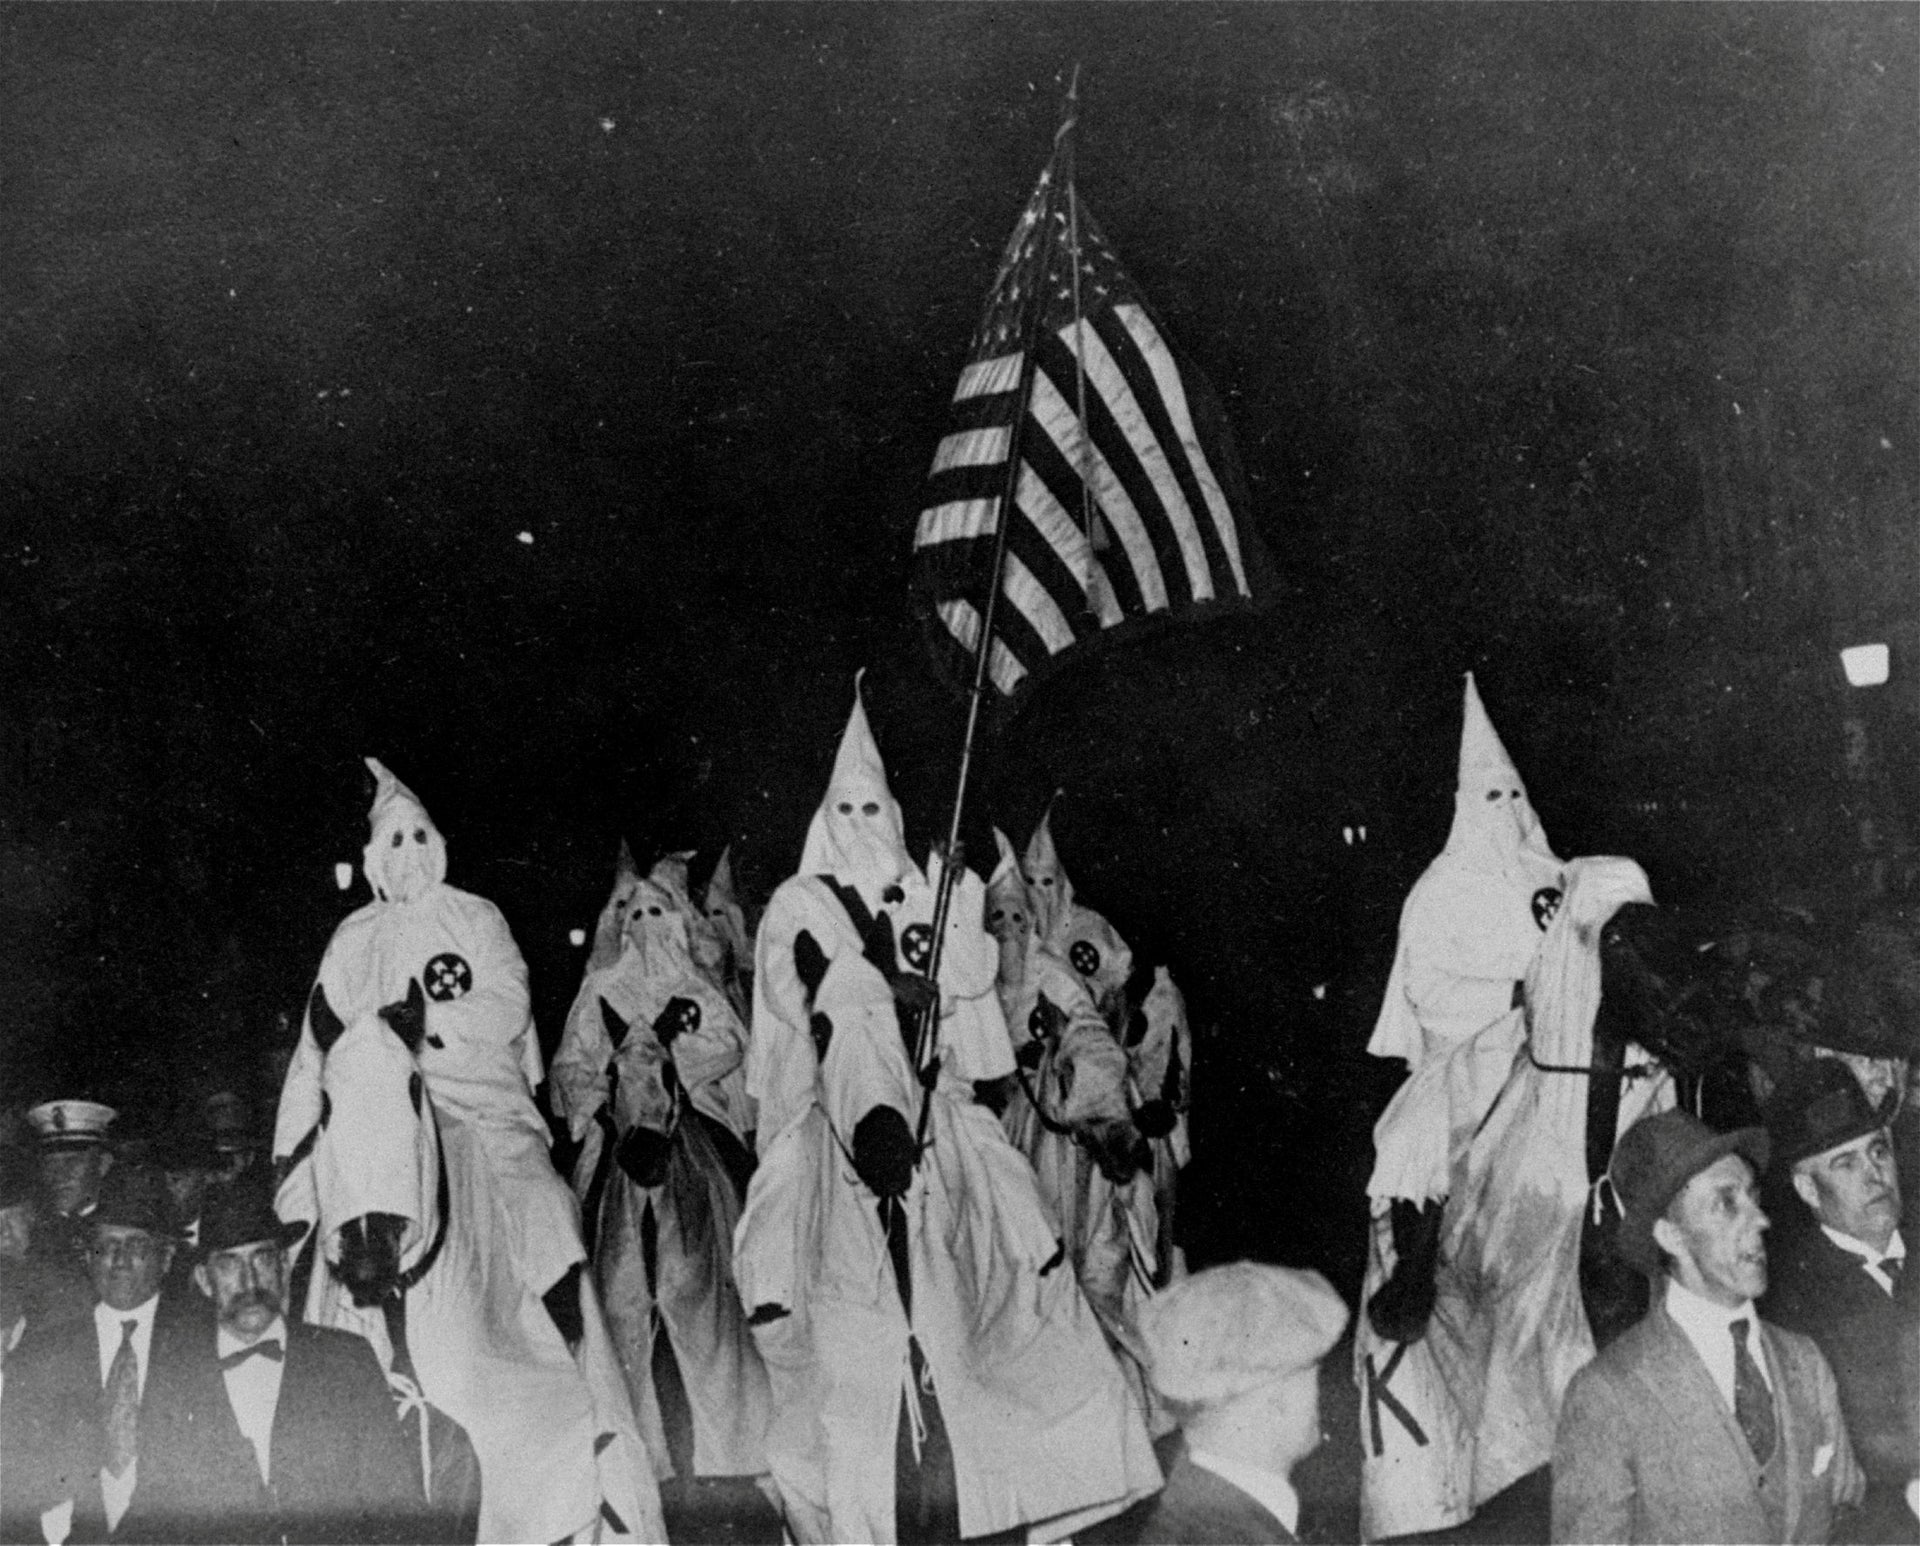 An unusual photo depicting the Ku Klux Klan in their regalia parading through the streets of Tulsa, Oklahoma, September 21, 1923, while the former Sheriff Bill  McCullough, whose efforts to stop the parade were fruitless, can be seen to the left of the hooded horse, note the uniformed police marching alongside the Klansmen.